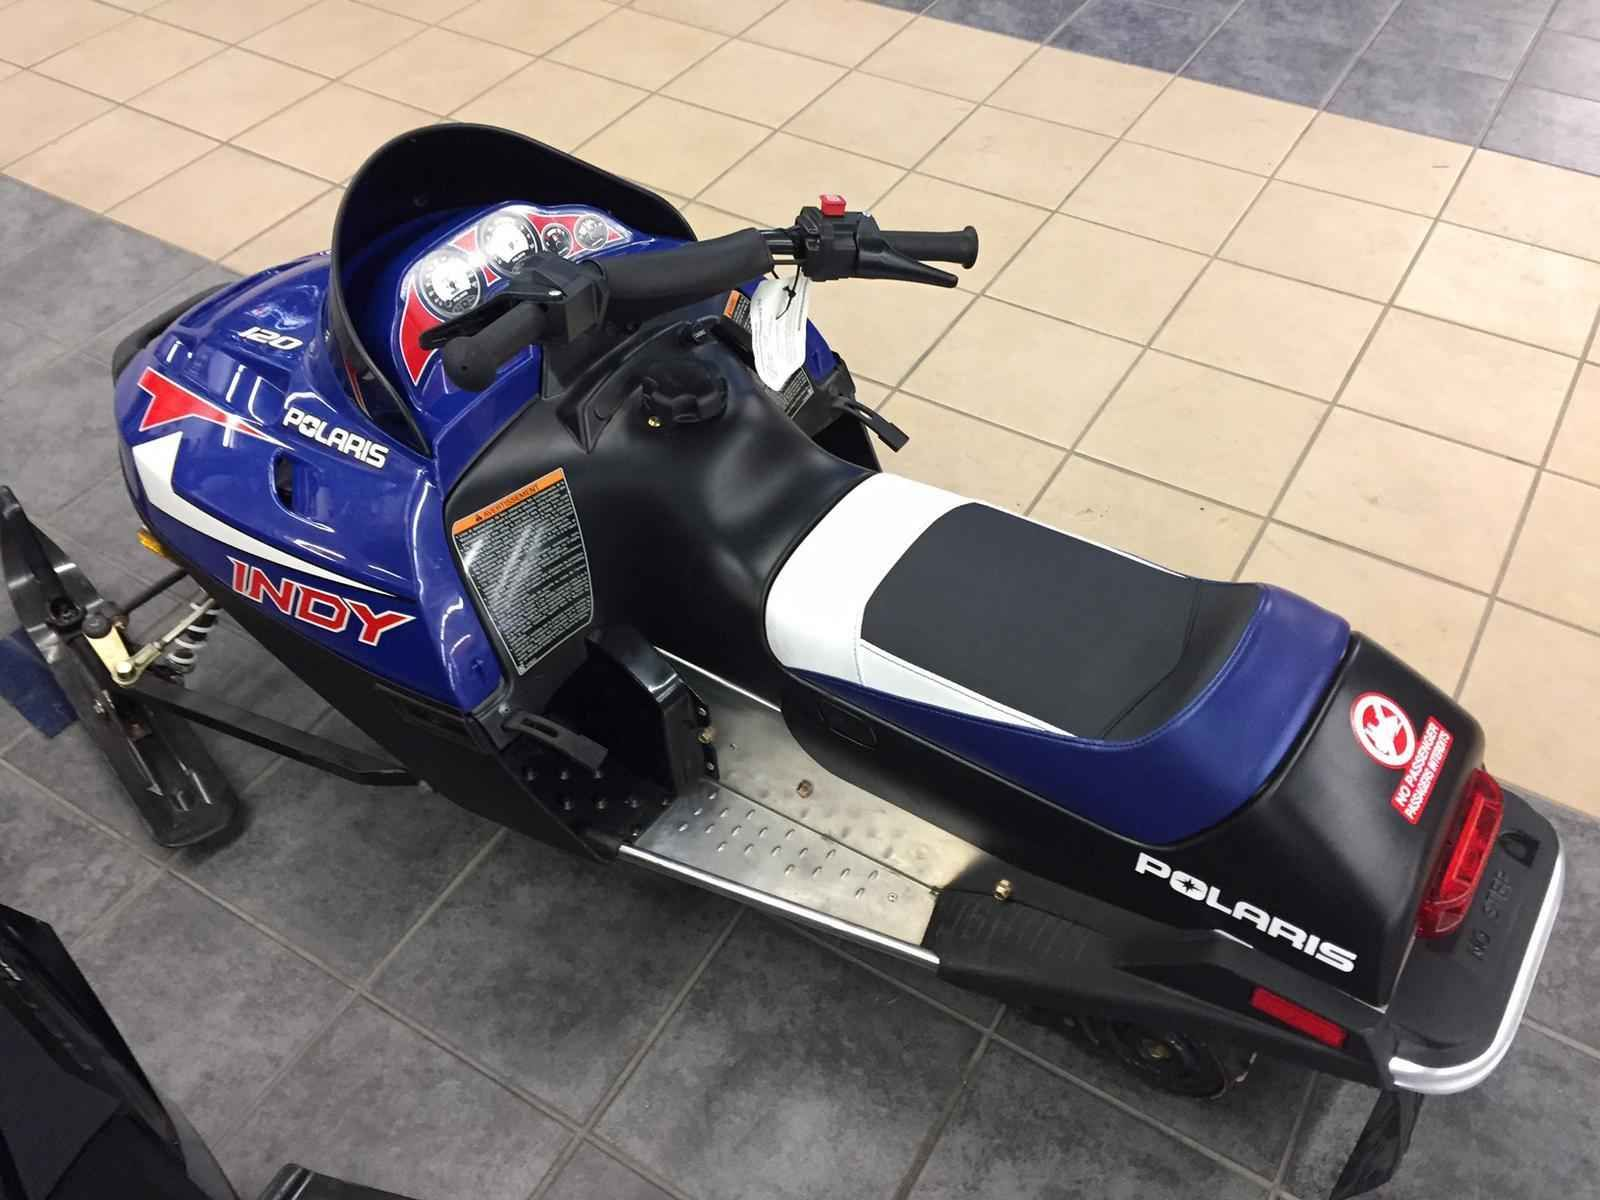 POLARIS SNOWMOBILE WHITE SWITCHBACK PRO X 800 NEWRAY TOYS# 57783A